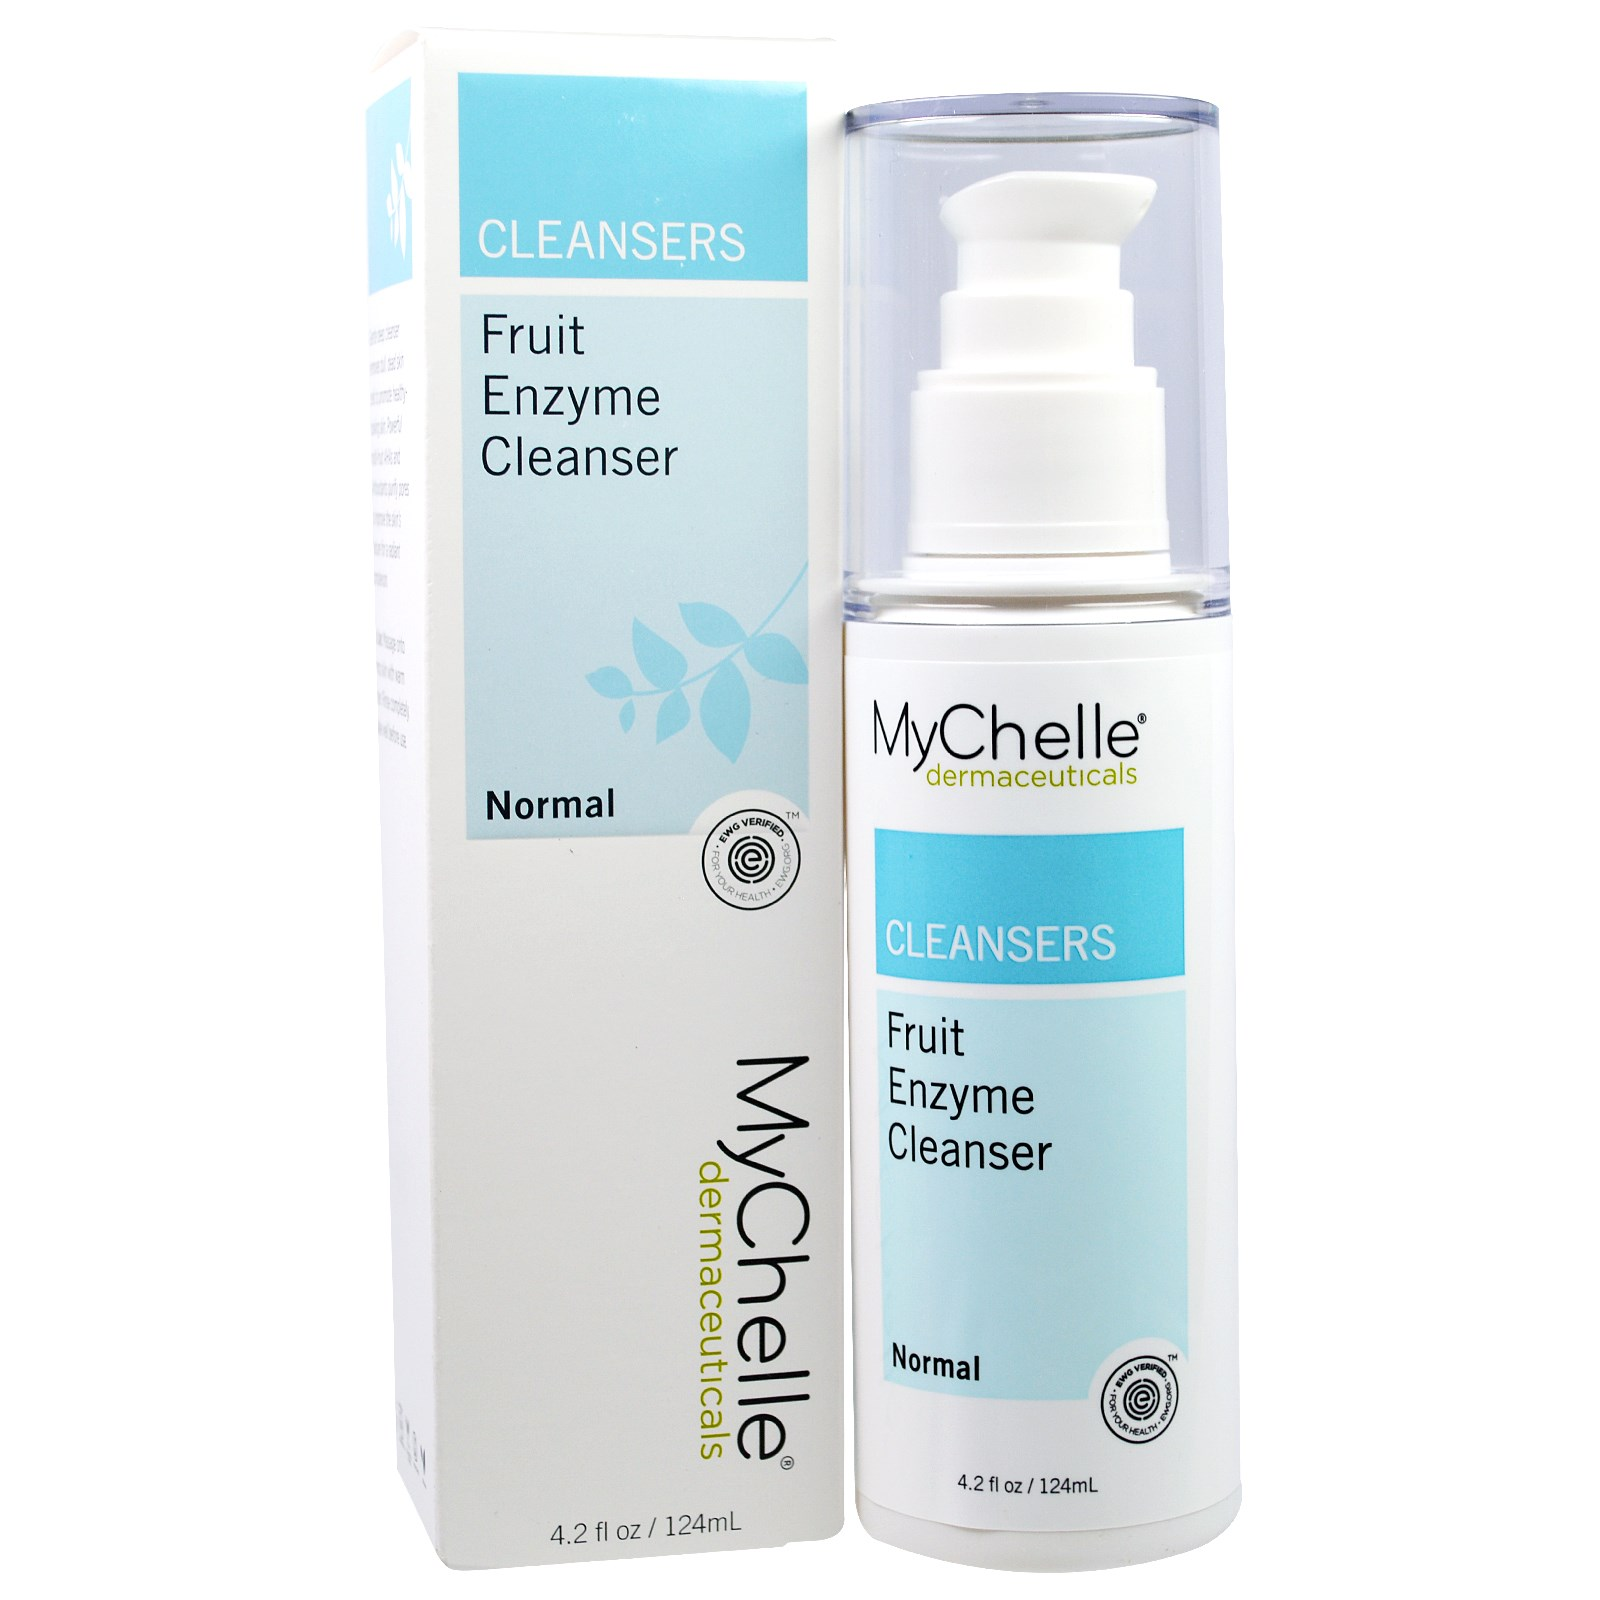 Quick Clean Micellar Water Cleanser - 4 fl. oz. by MyChelle Dermaceuticals (pack of 1) Elizavecca, Milkypiggy, Gold Kangsi Pack, 120 ml(pack of 6)